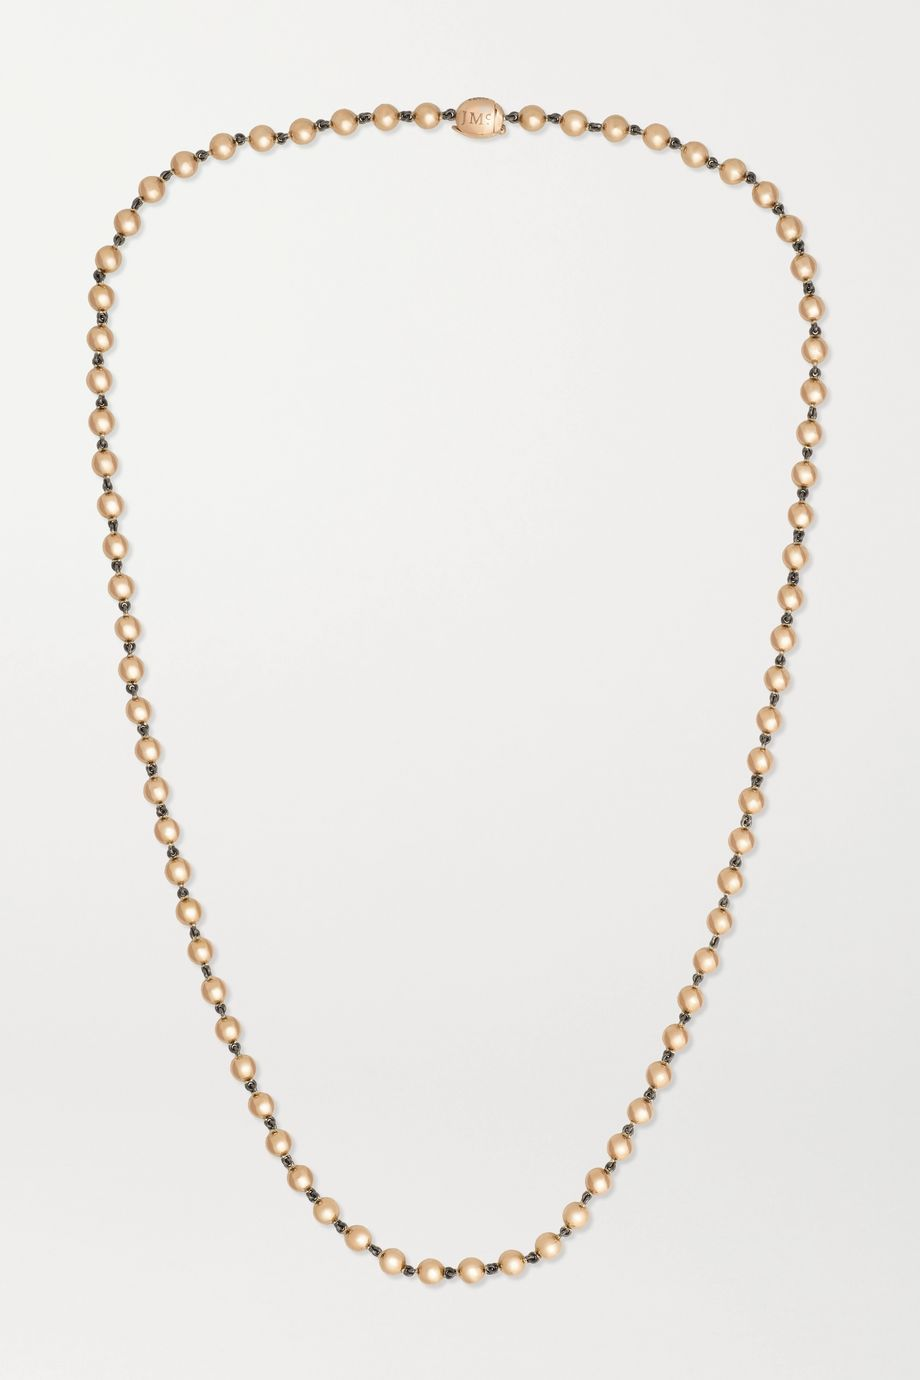 Jessica McCormack Ball n Chain 18-karat rose gold necklace